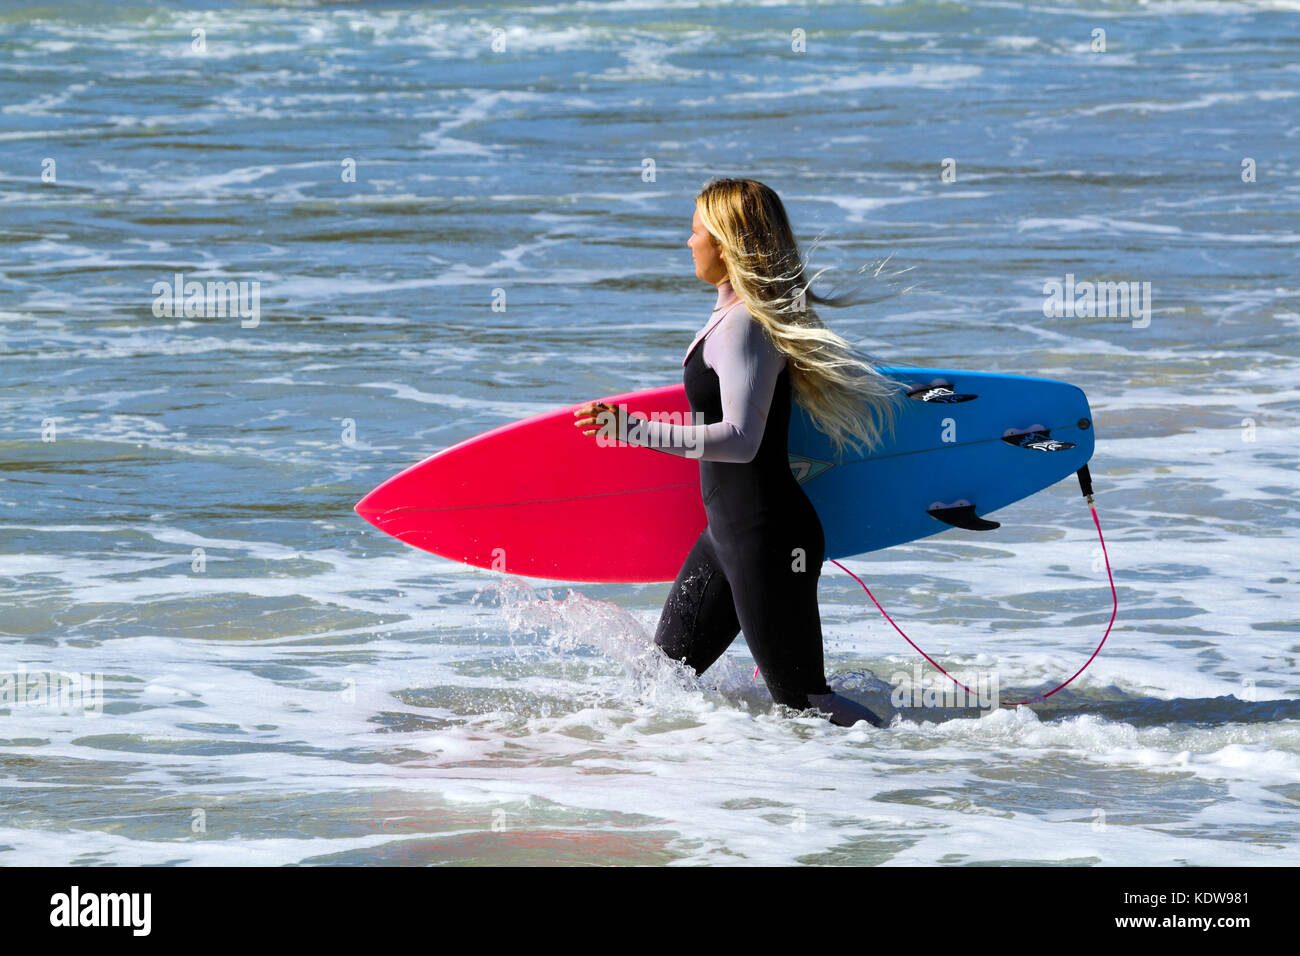 A blond lady in her early twenties wades into the surf with surfboard - Stock Image